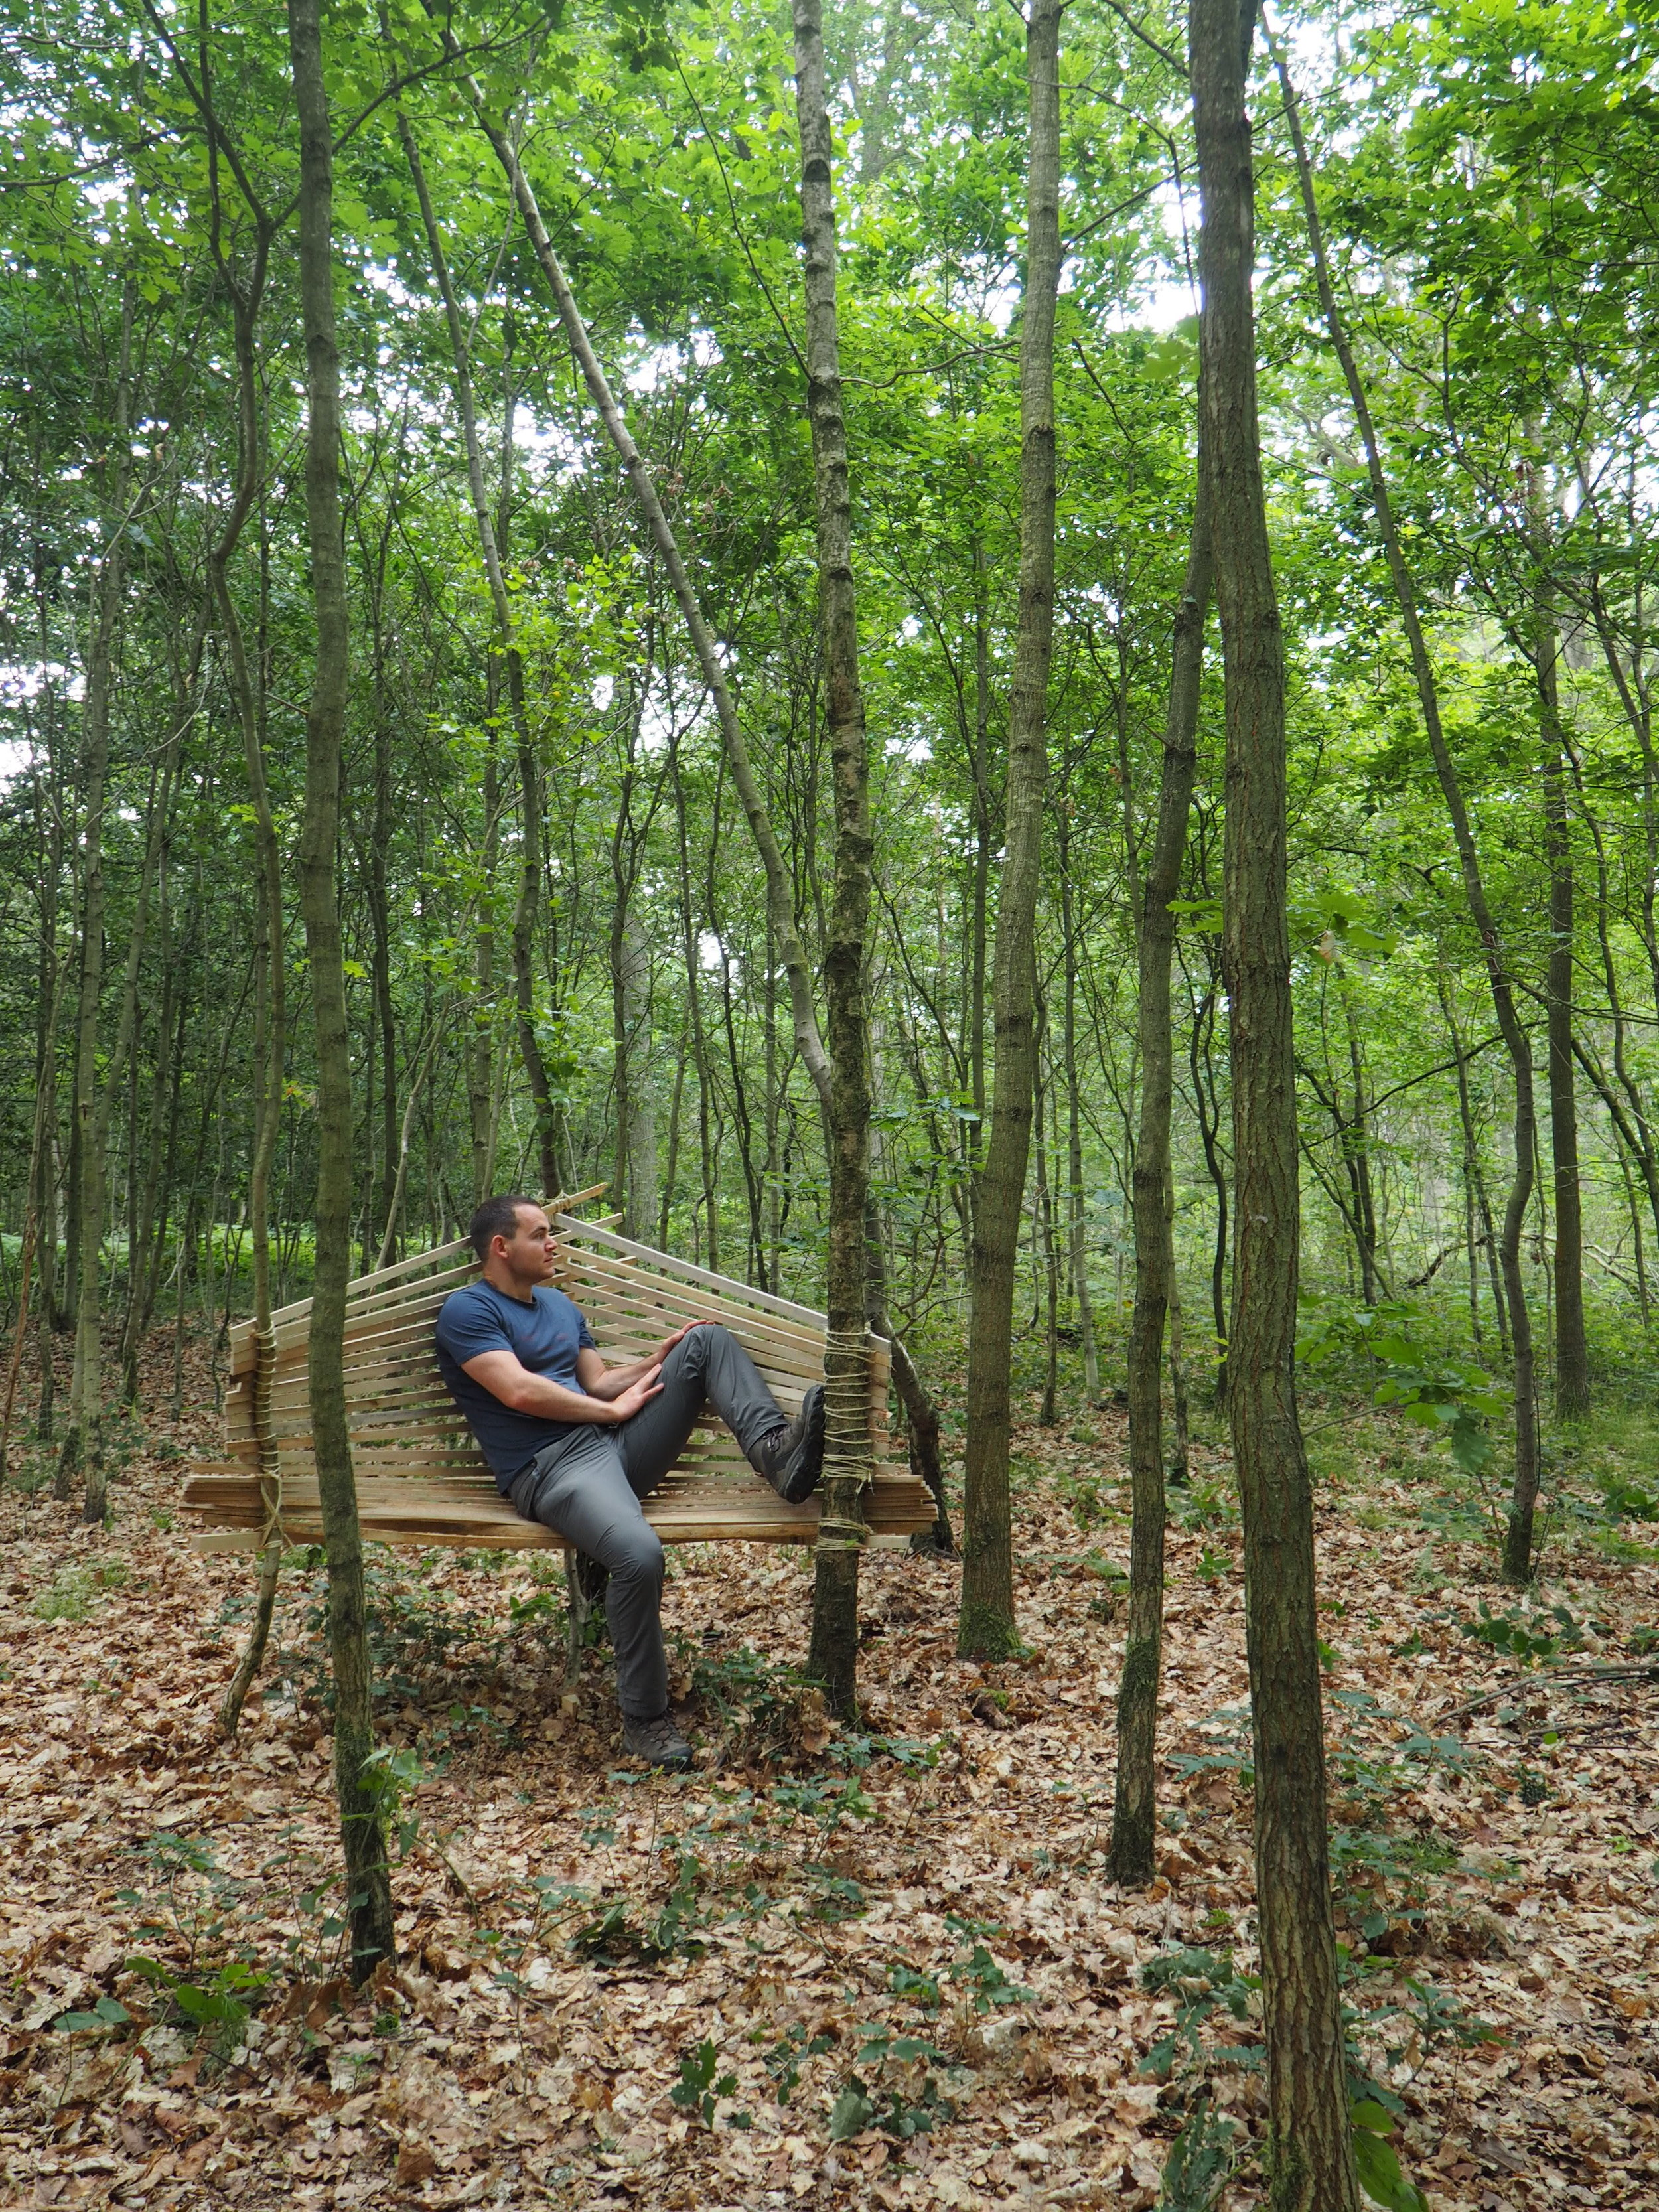 Bench designed and built in the Wyre Forest, Worcestershire as part of Studio in the Woods 2019